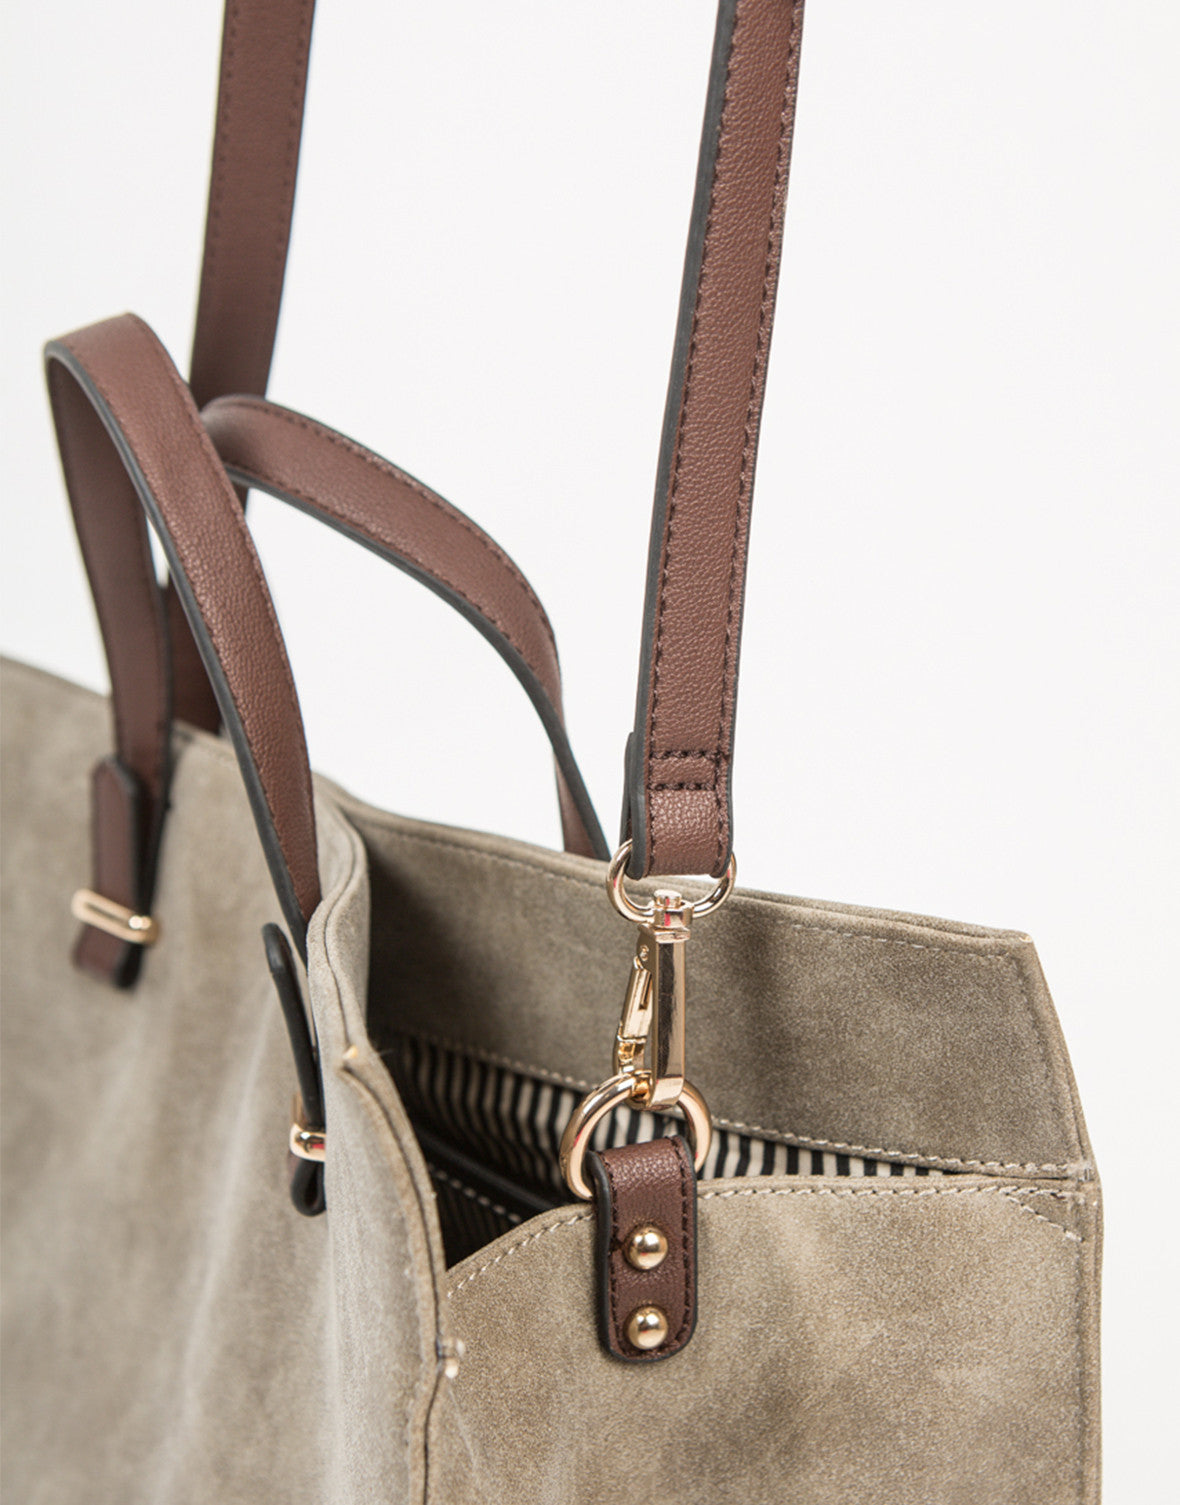 Detail of Oversized Shopper Tote Bag